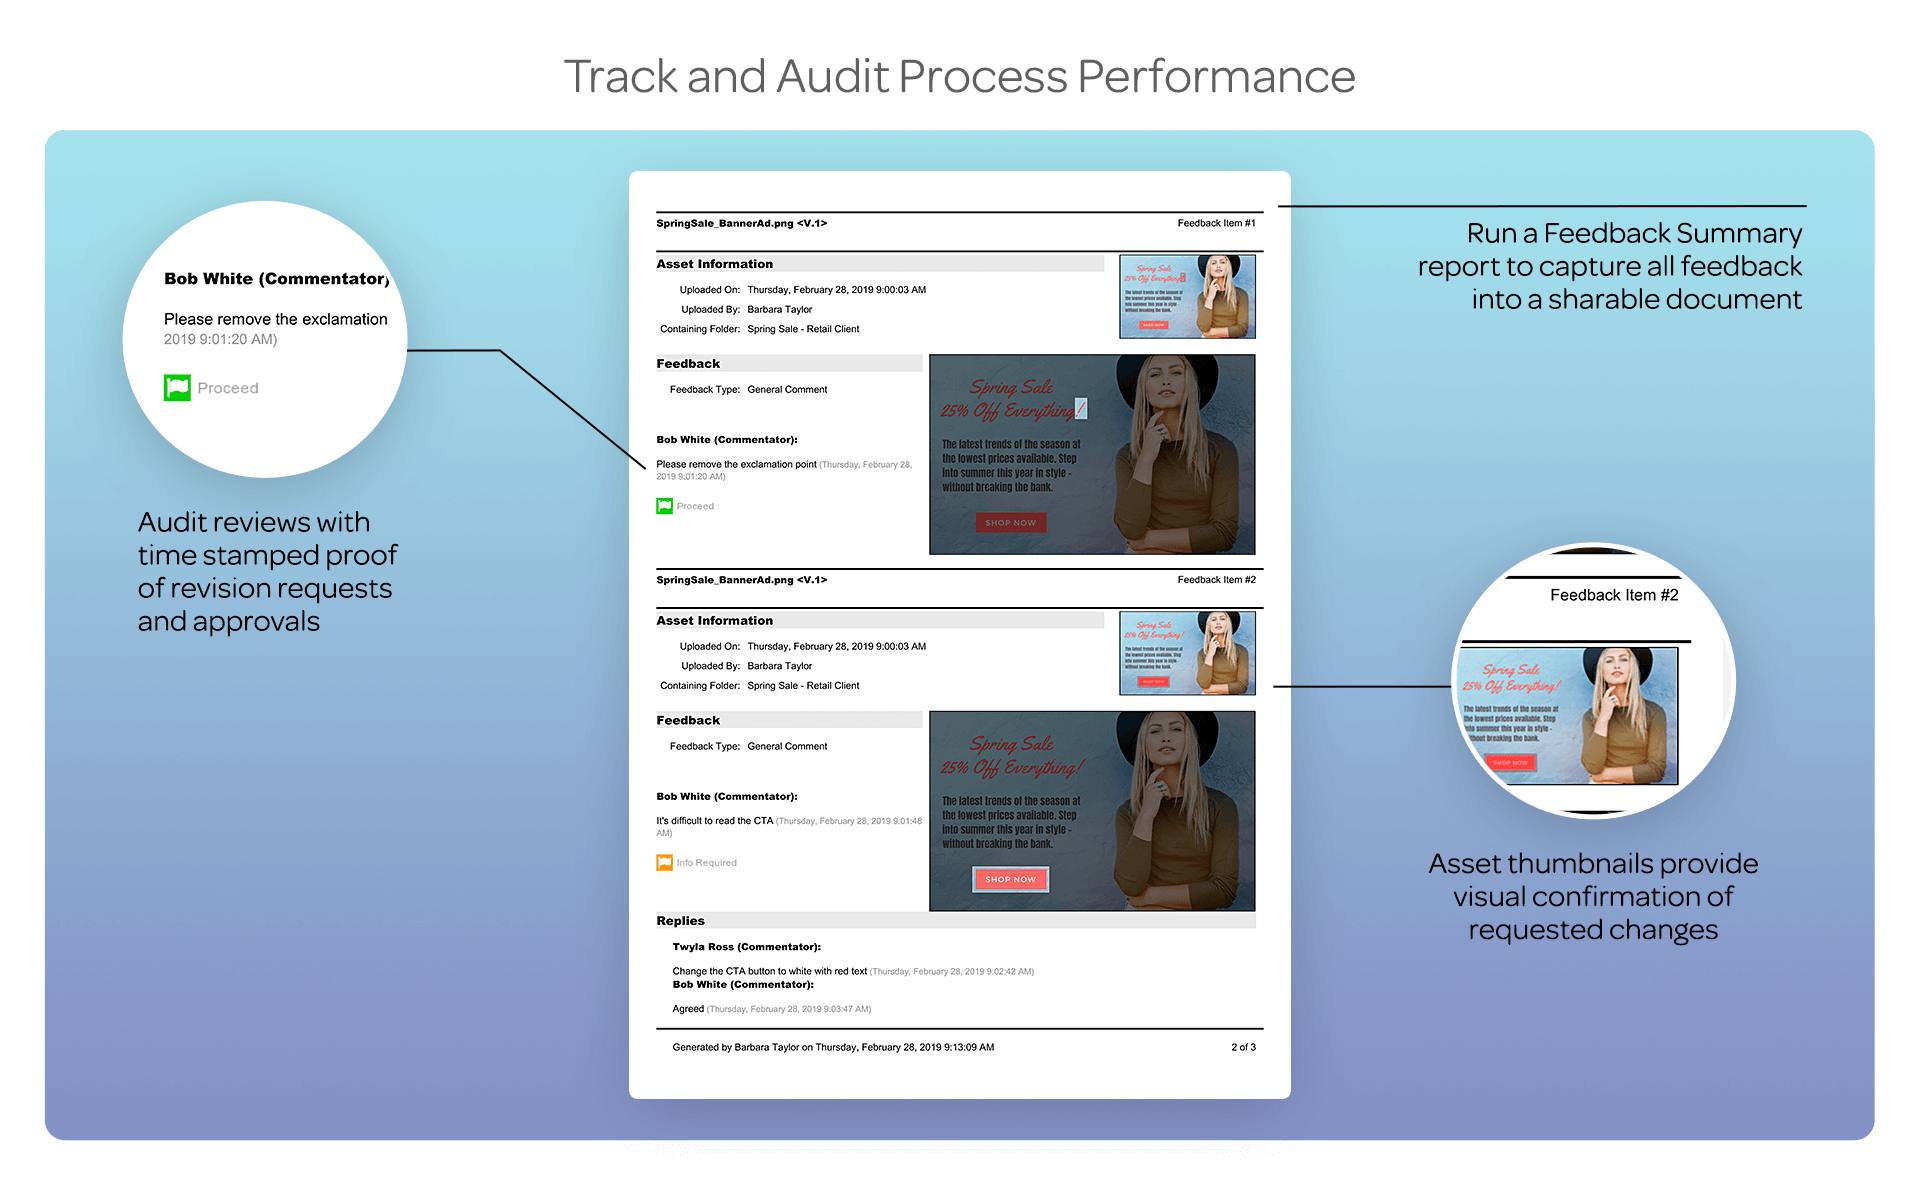 Track and Audit Process Performance